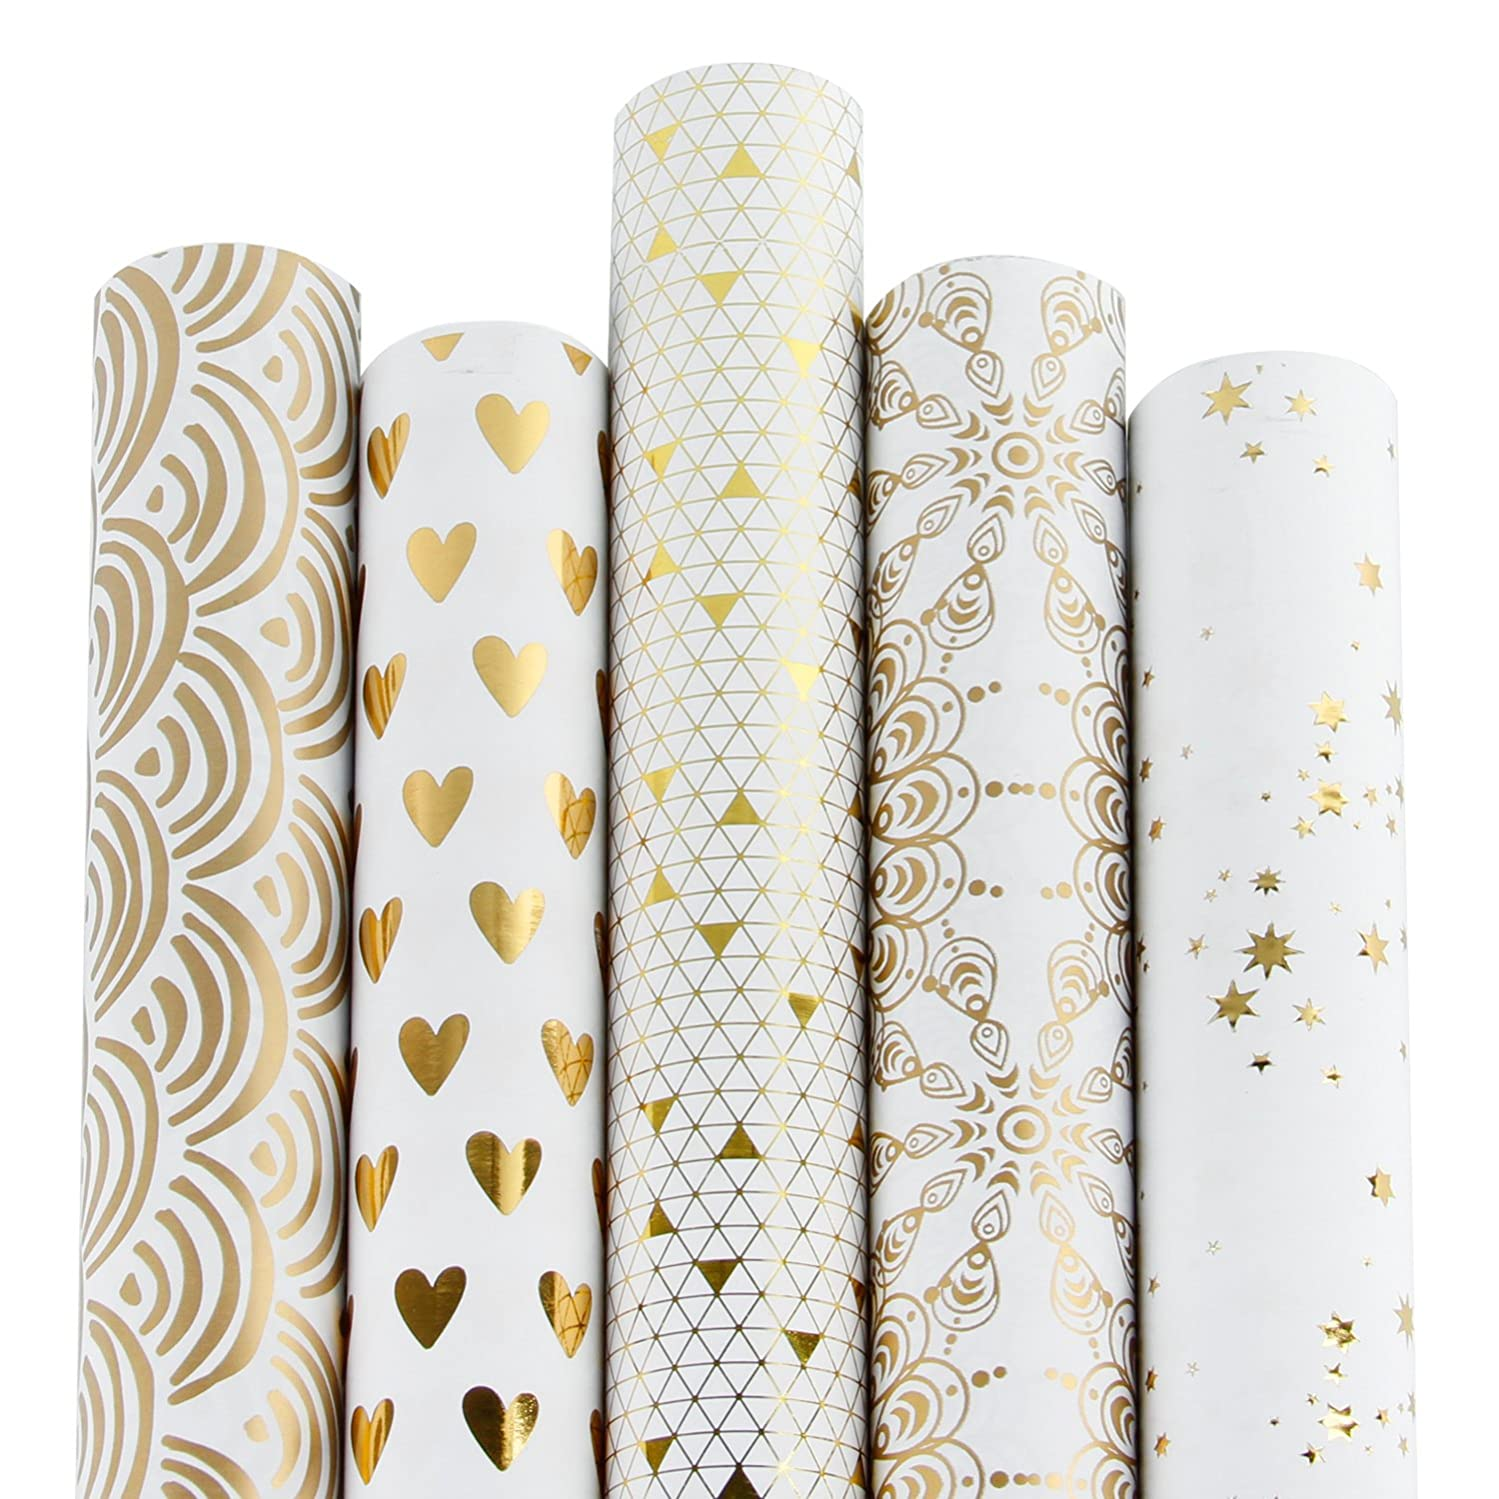 RUSPEPA Gift Wrapping Paper Roll-White and Gold Foil Pattern for Wedding,Birthdays, Valentines, Christmas-5 Roll-30Inch X 10Feet Per Roll